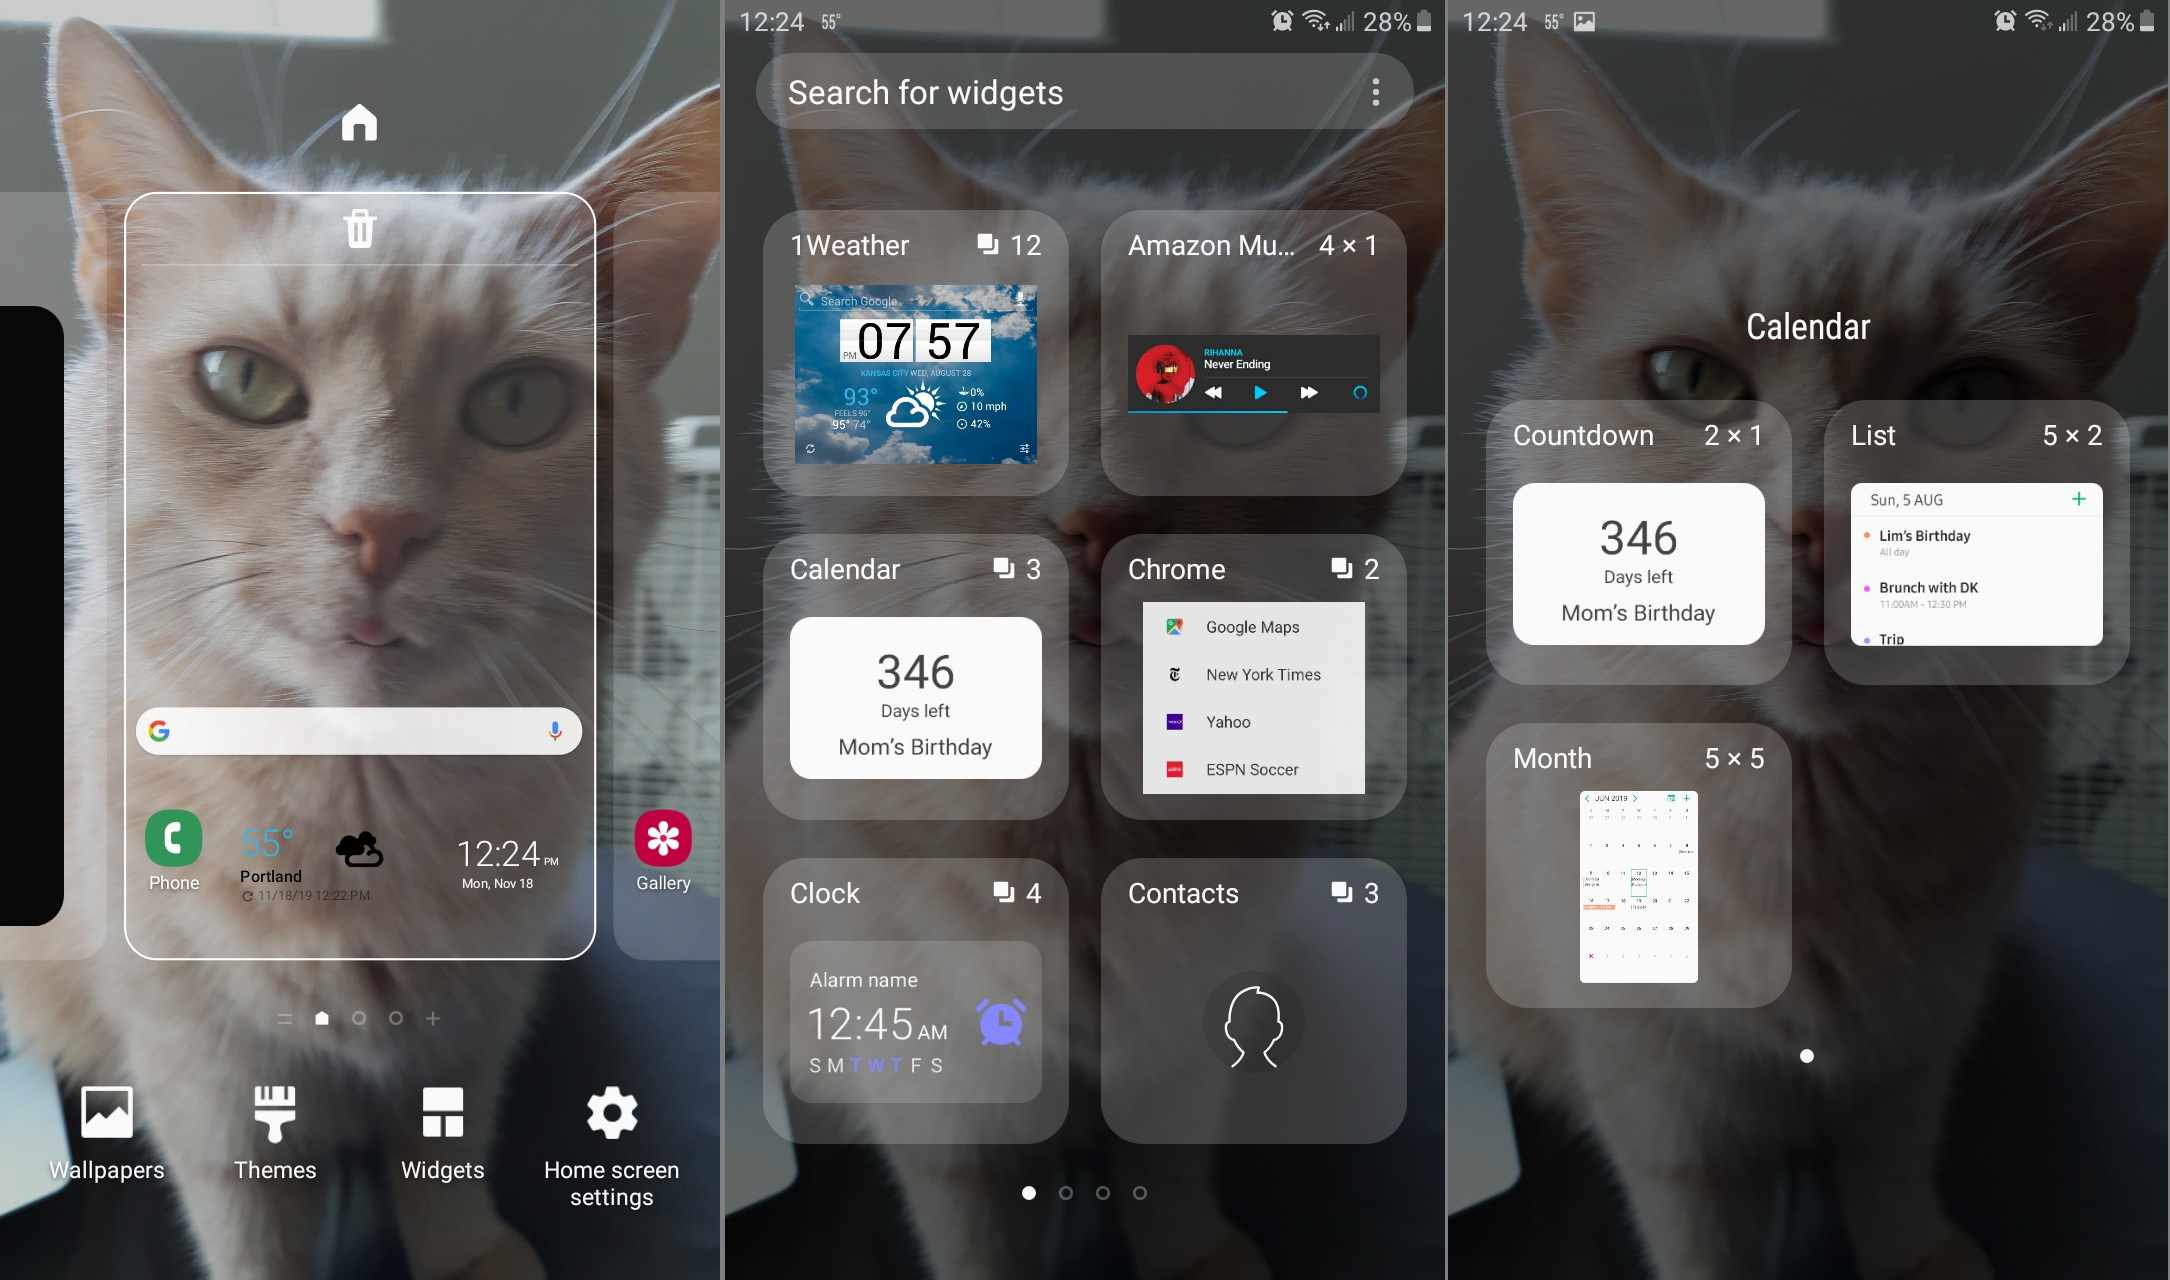 Touch and hold on the home screen, then select Widgets > Calendar > Countdown.